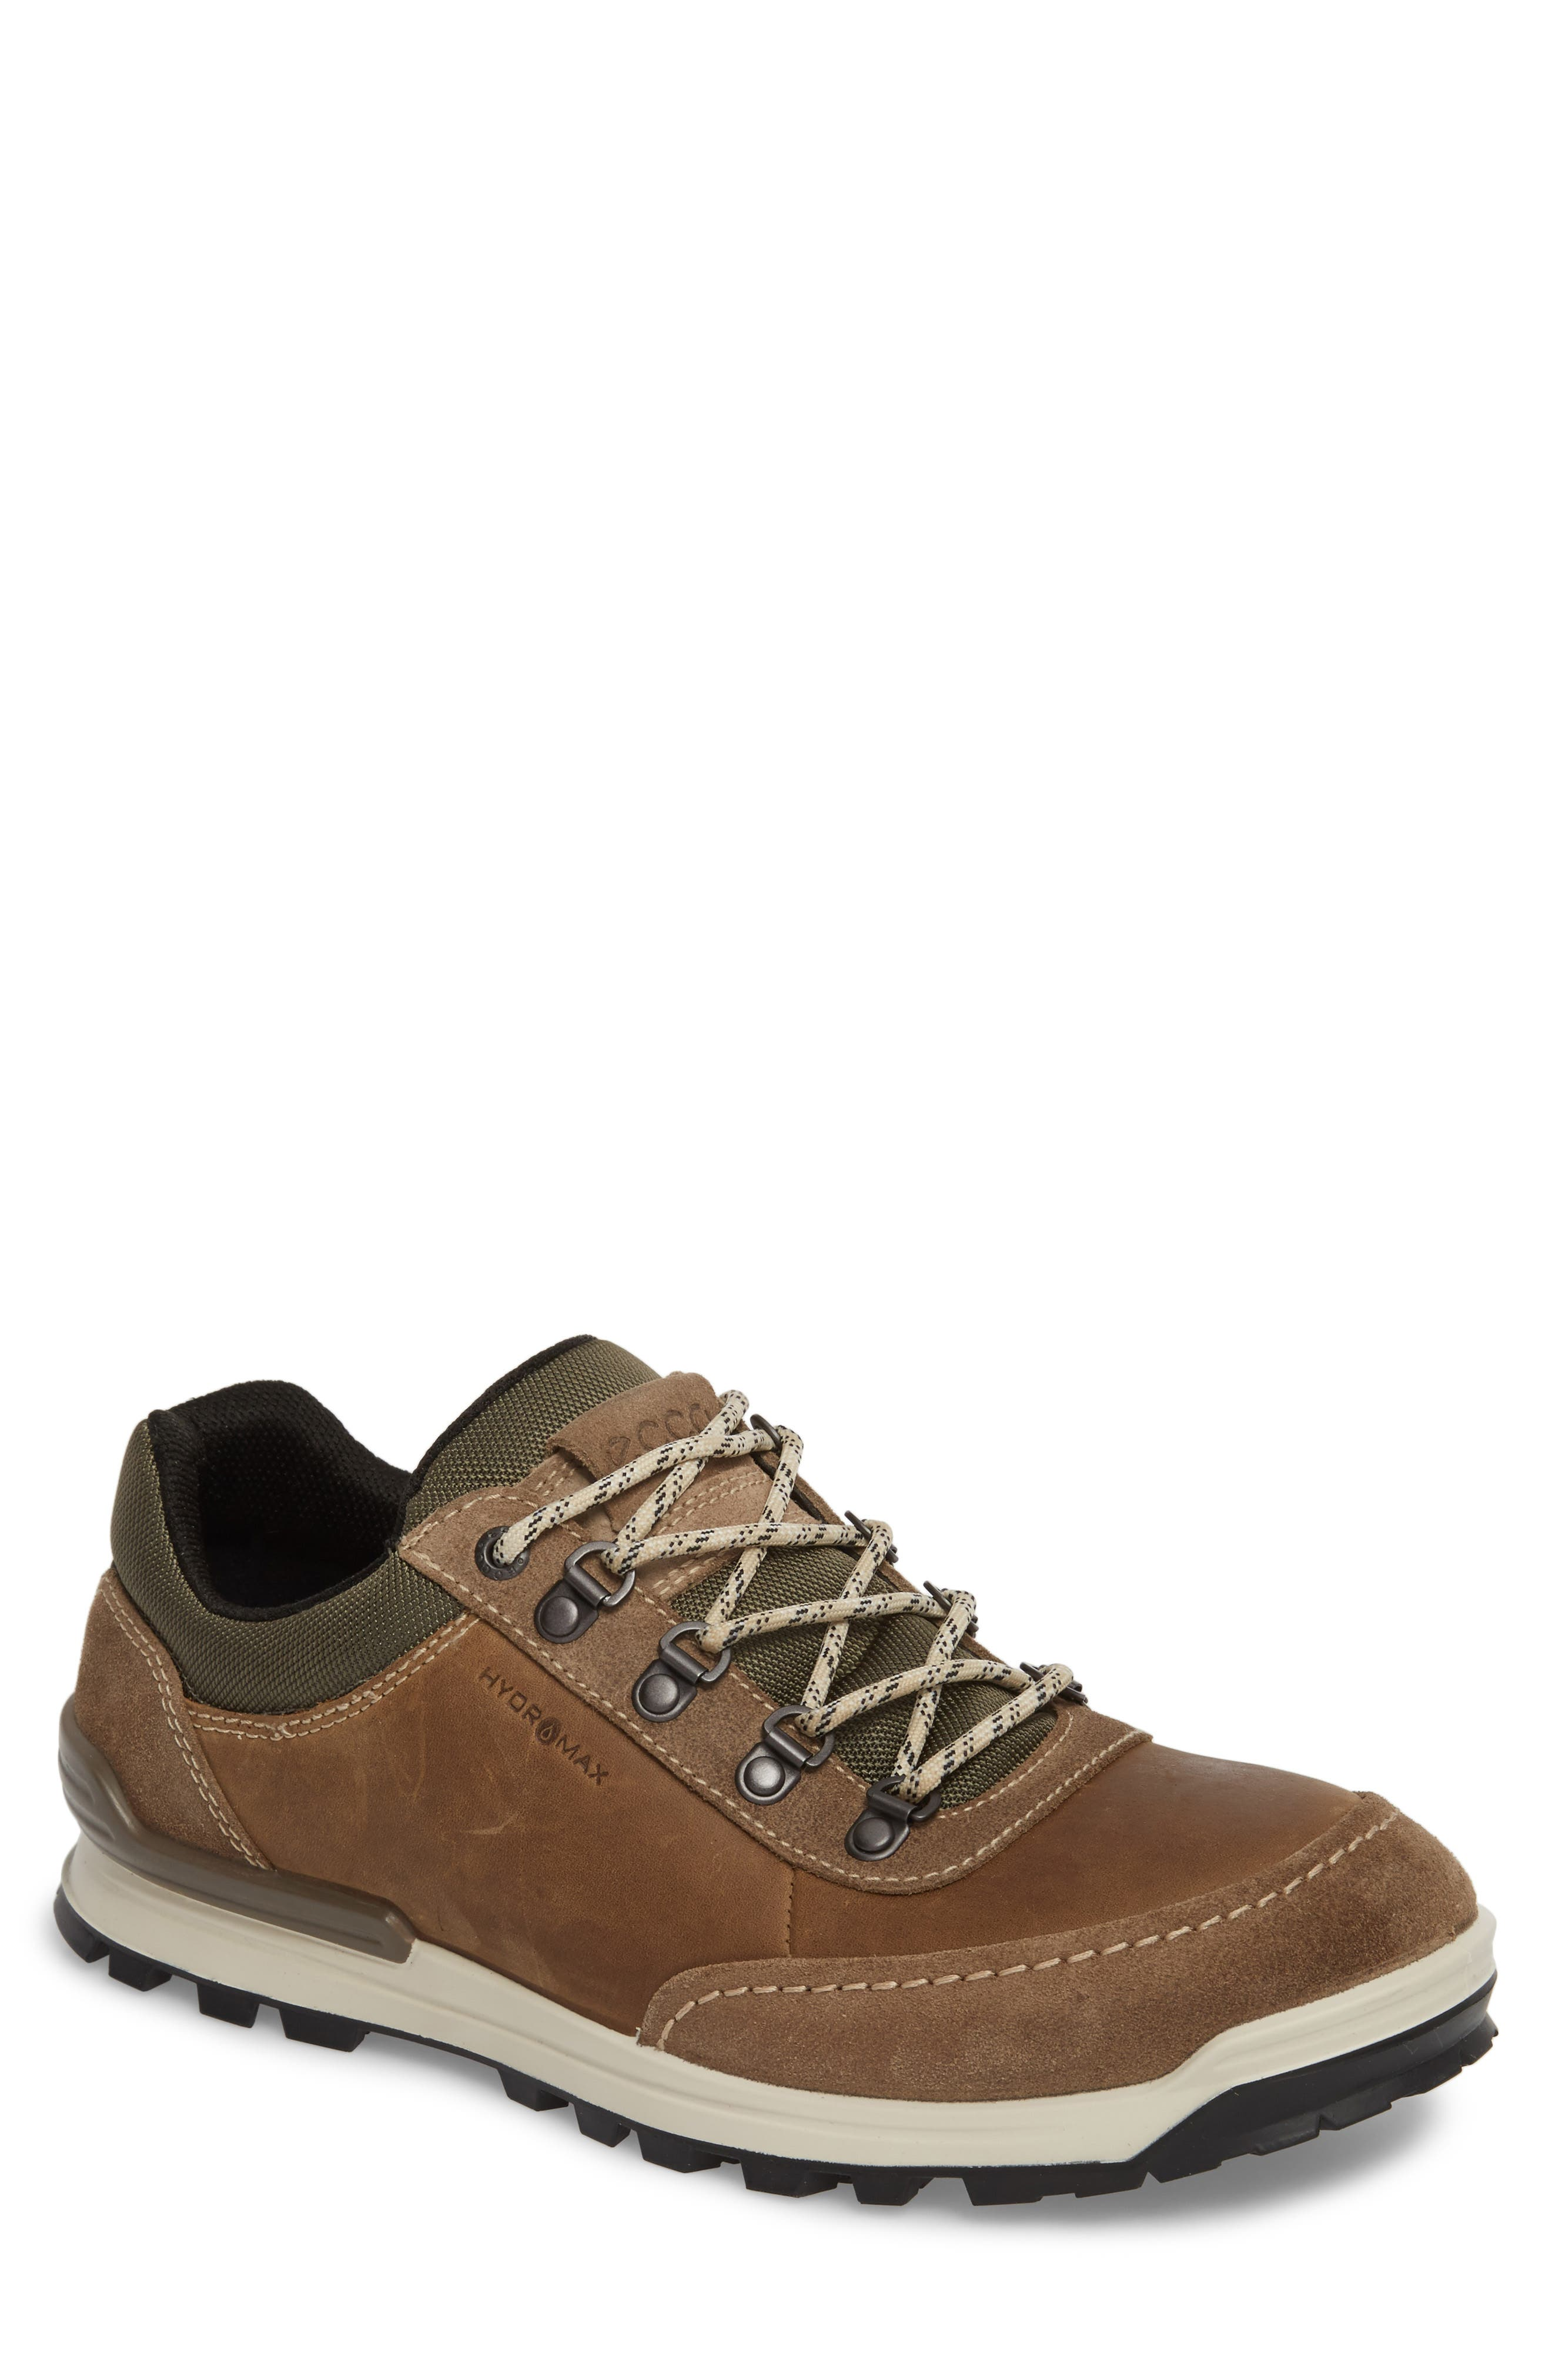 Oregon Sneaker,                         Main,                         color, Brown Leather